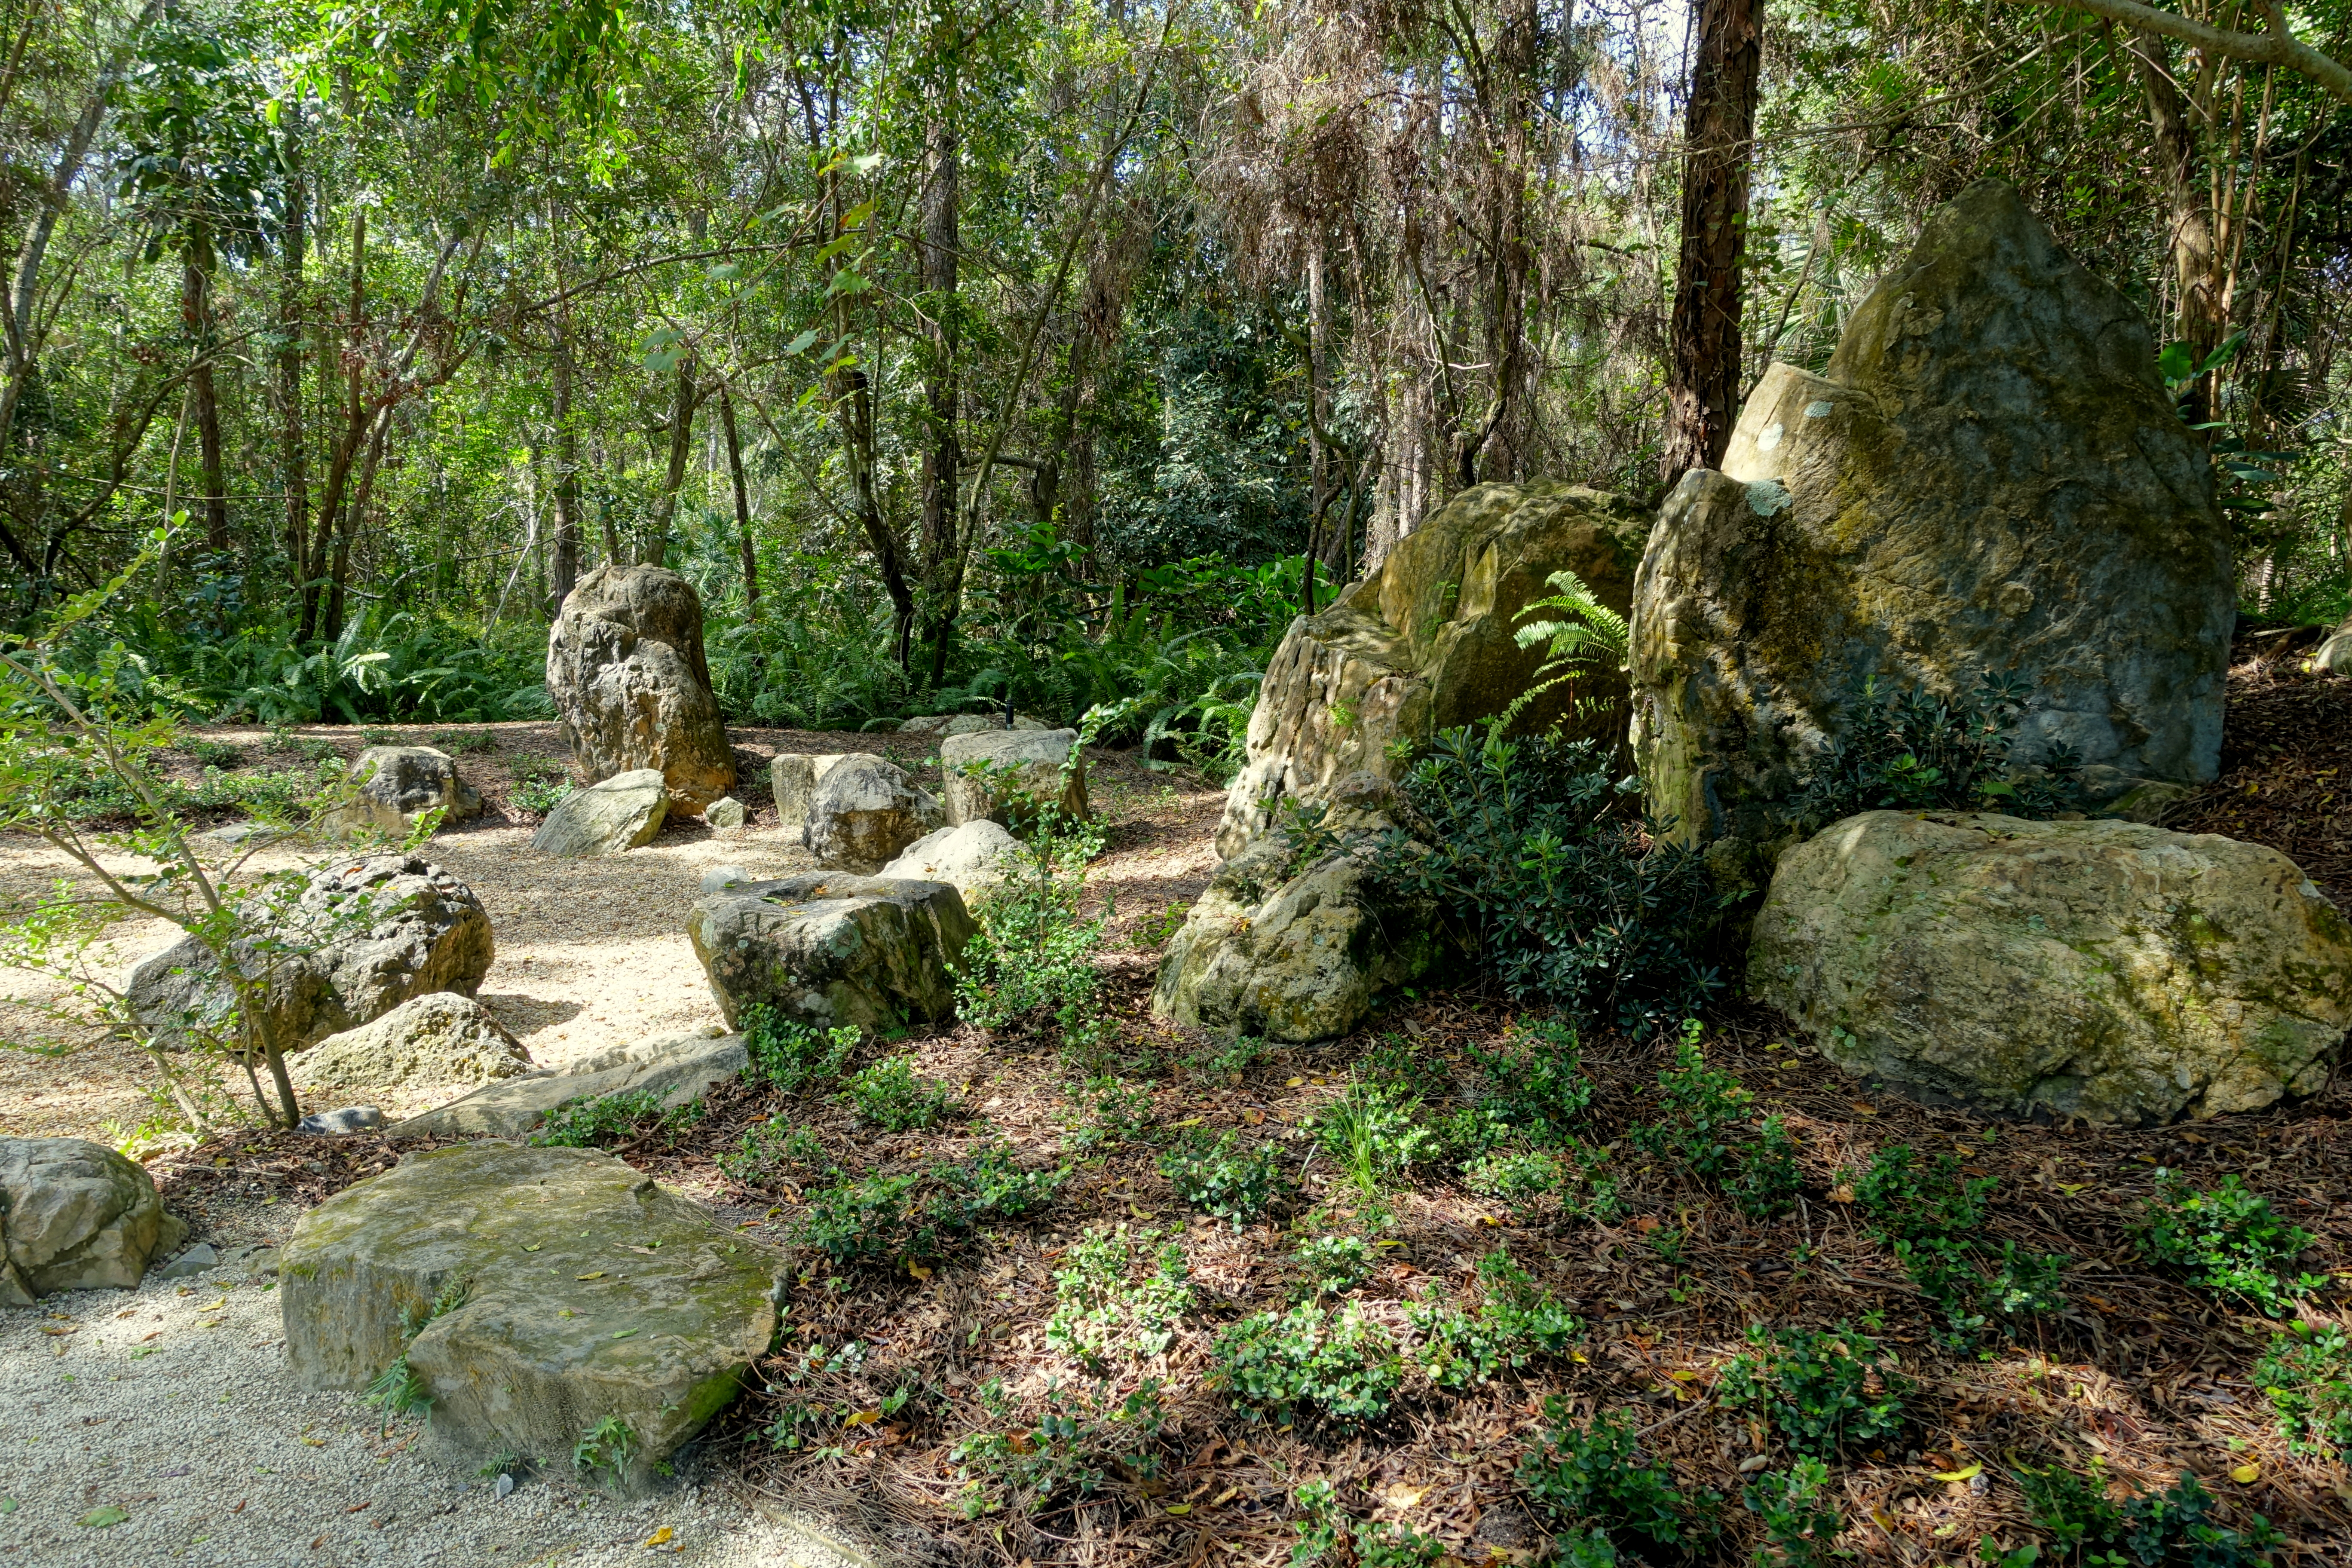 File:Early Rock Garden   Morikami Museum And Japanese Gardens   Palm Beach  County,